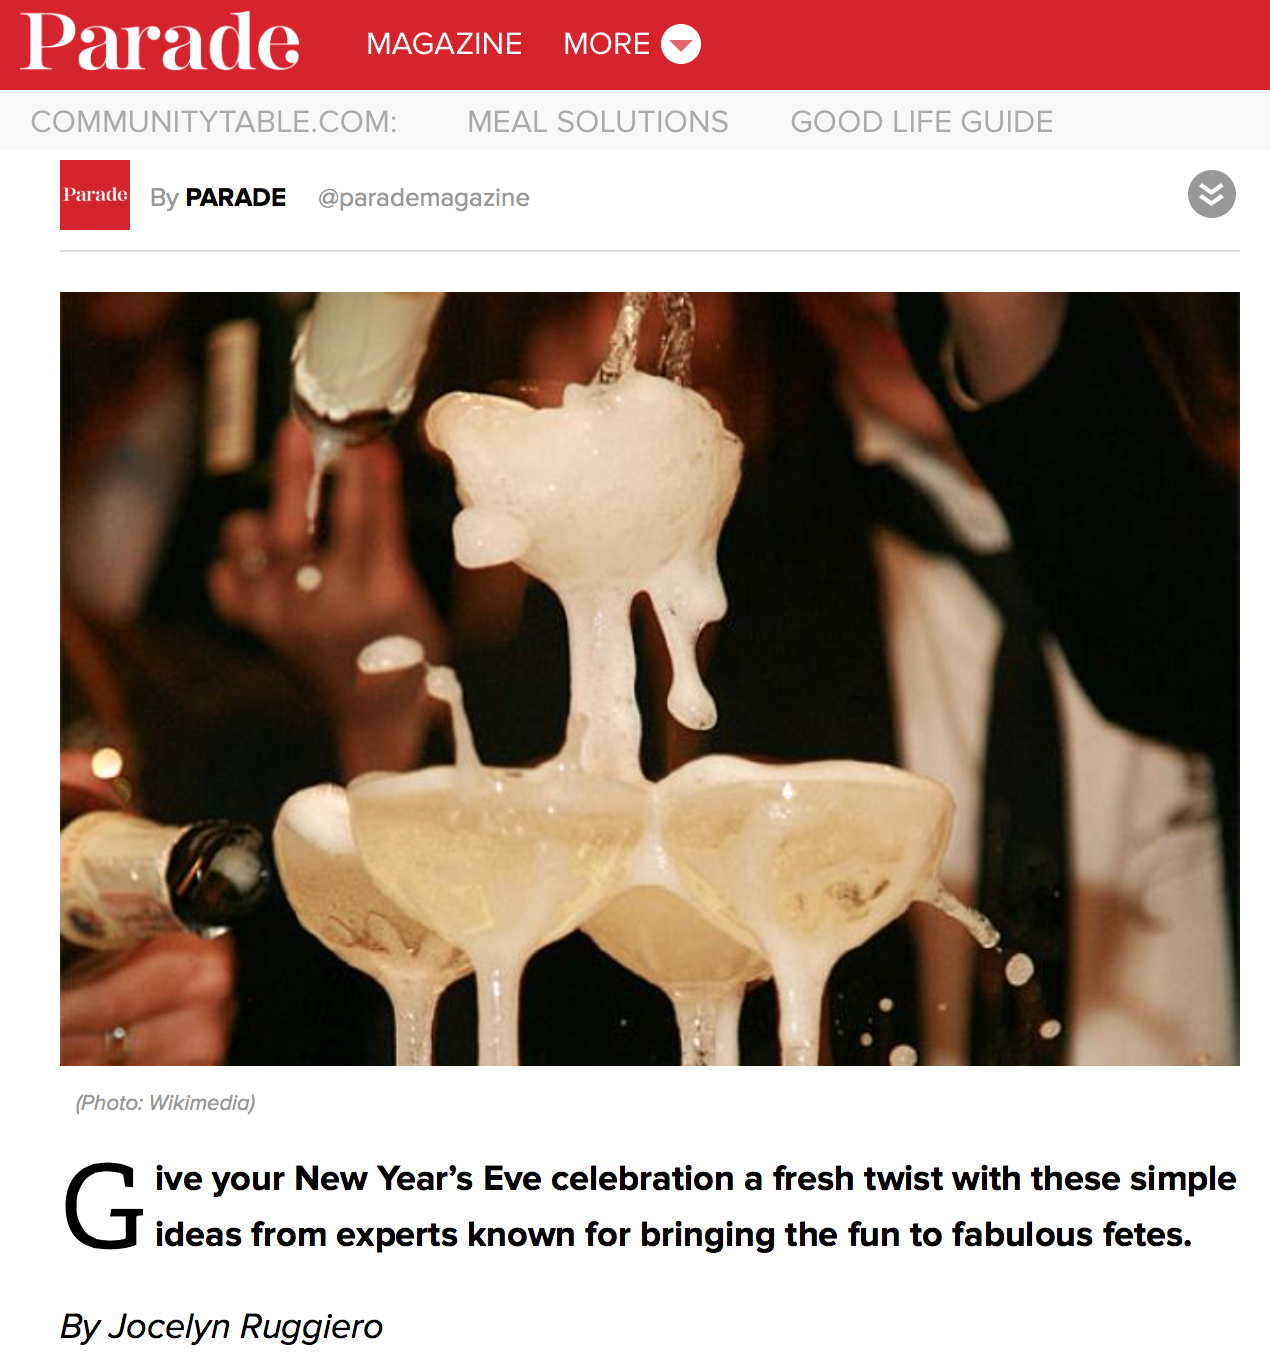 Parade Magazine: The Party Starts Here!